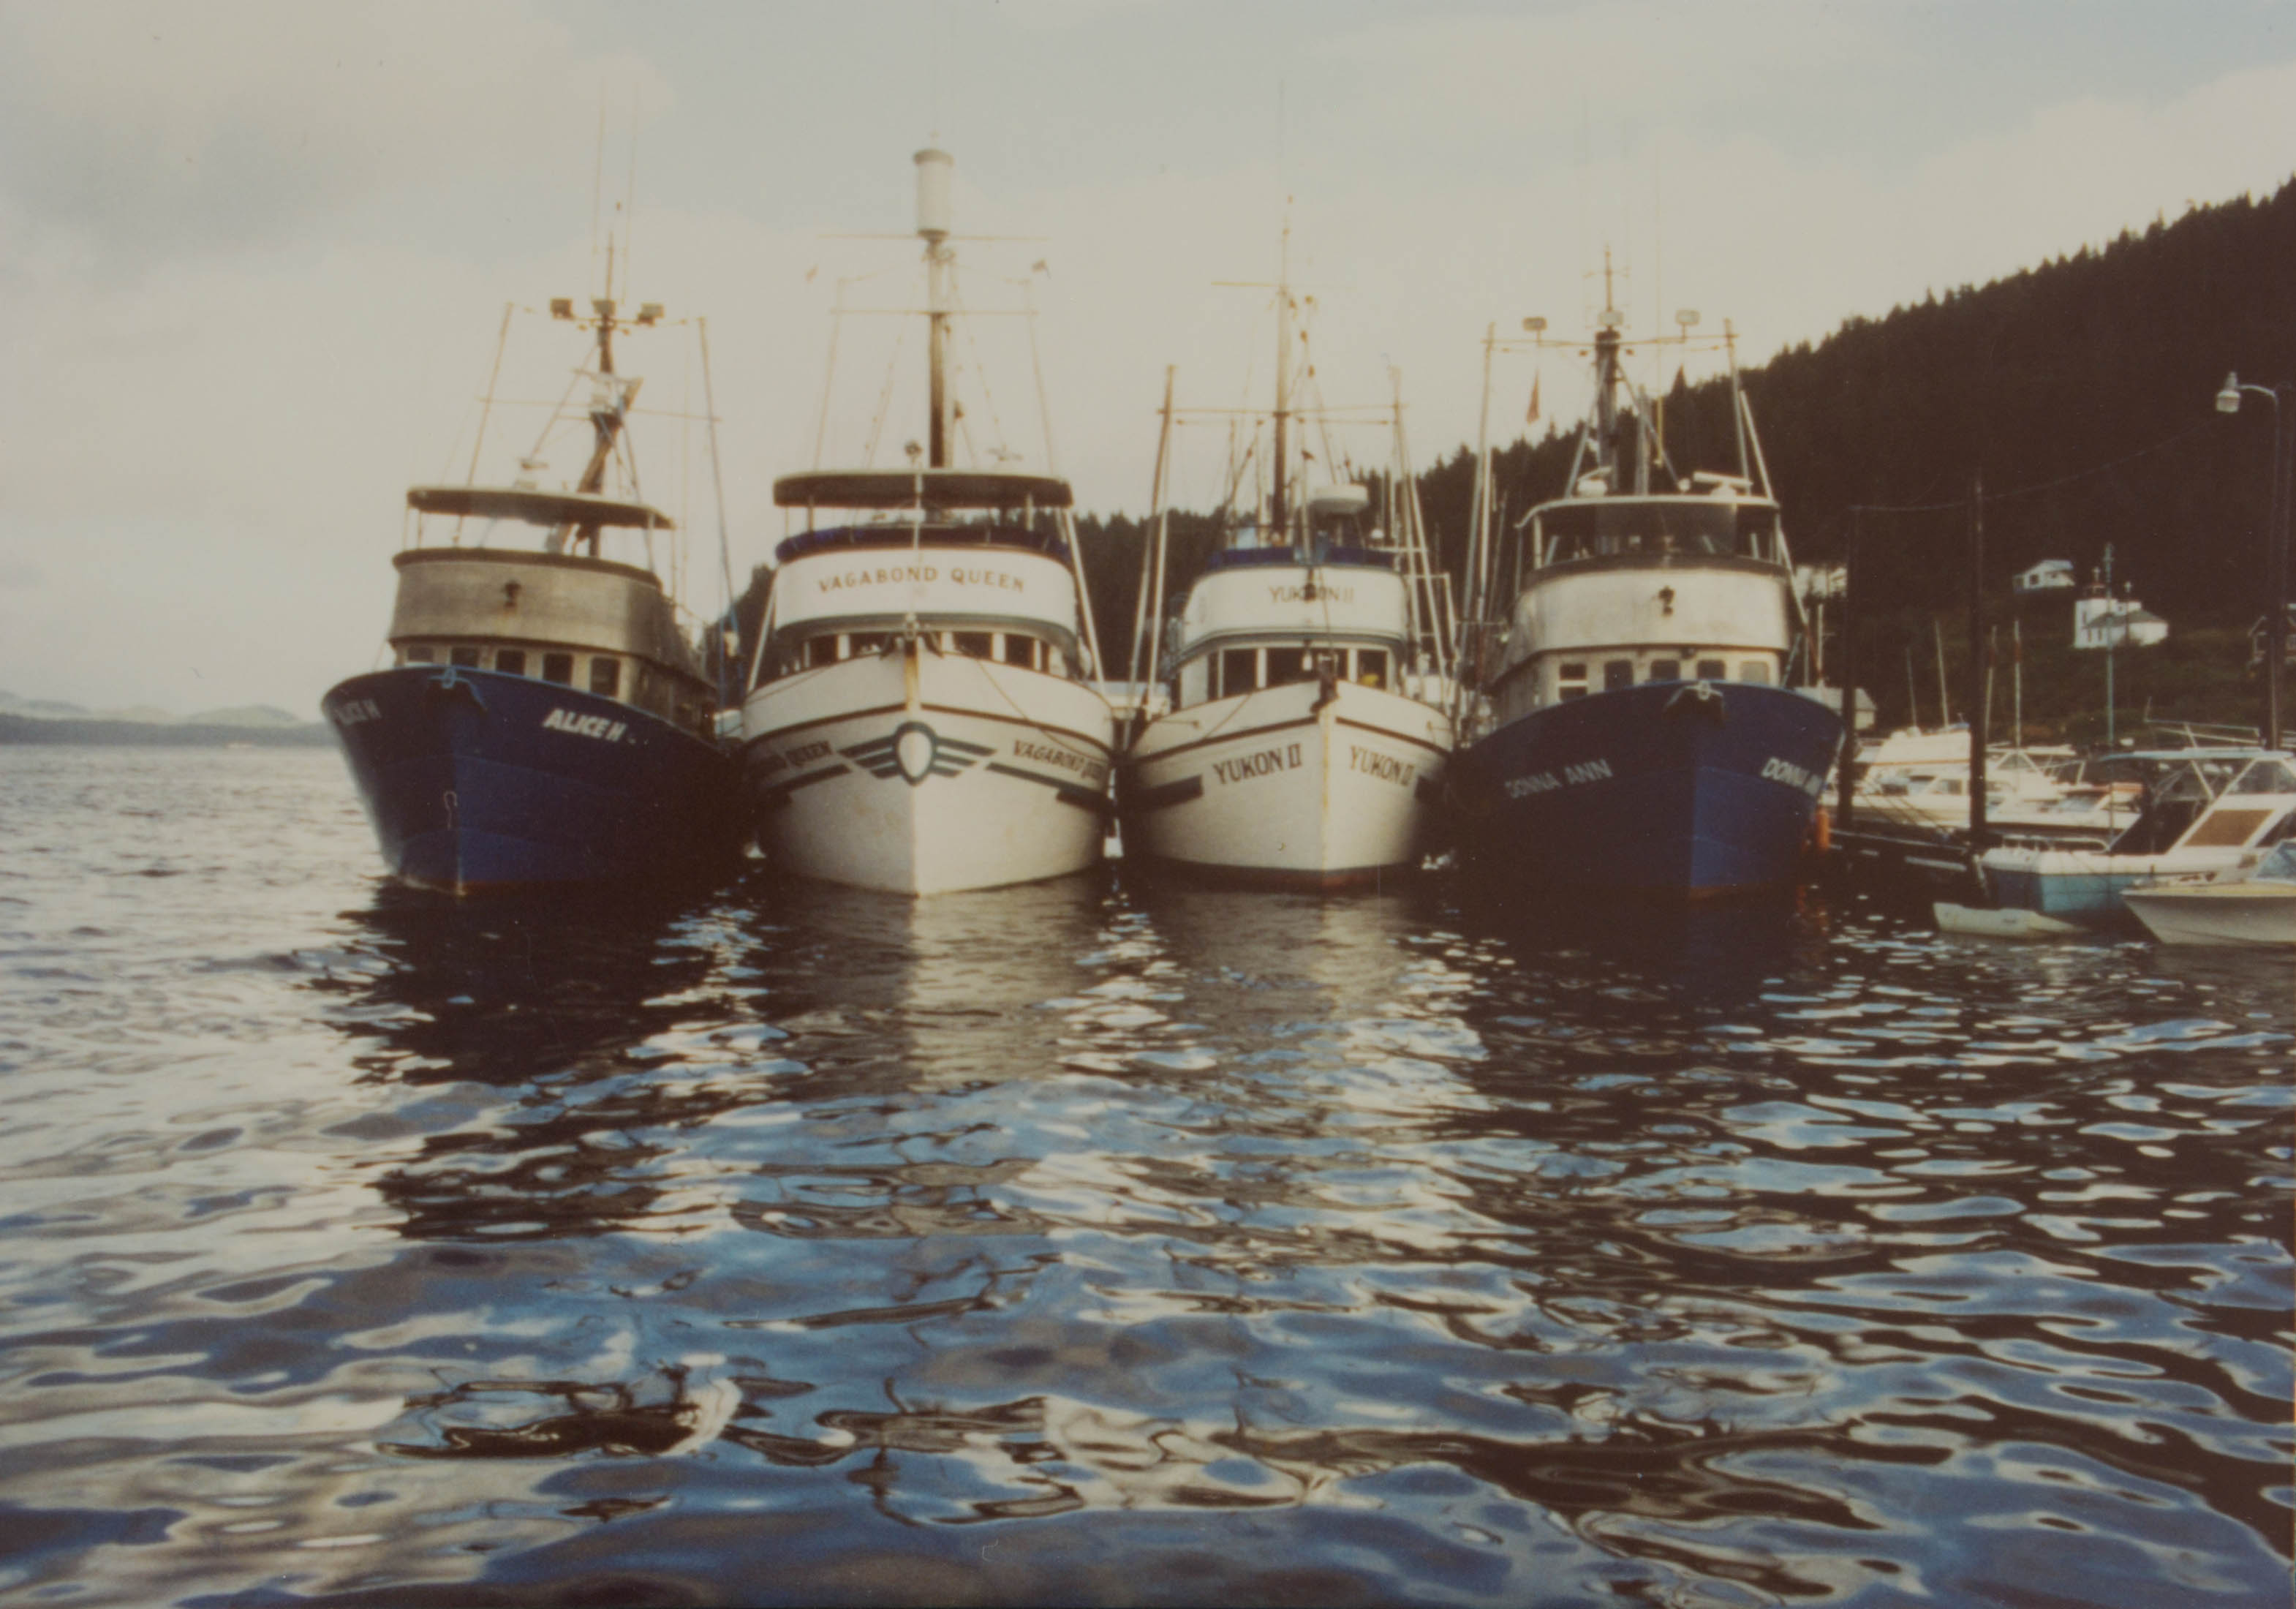 Fishing Vessels Alice H, Vagabond Queen, Yukon II and Donna